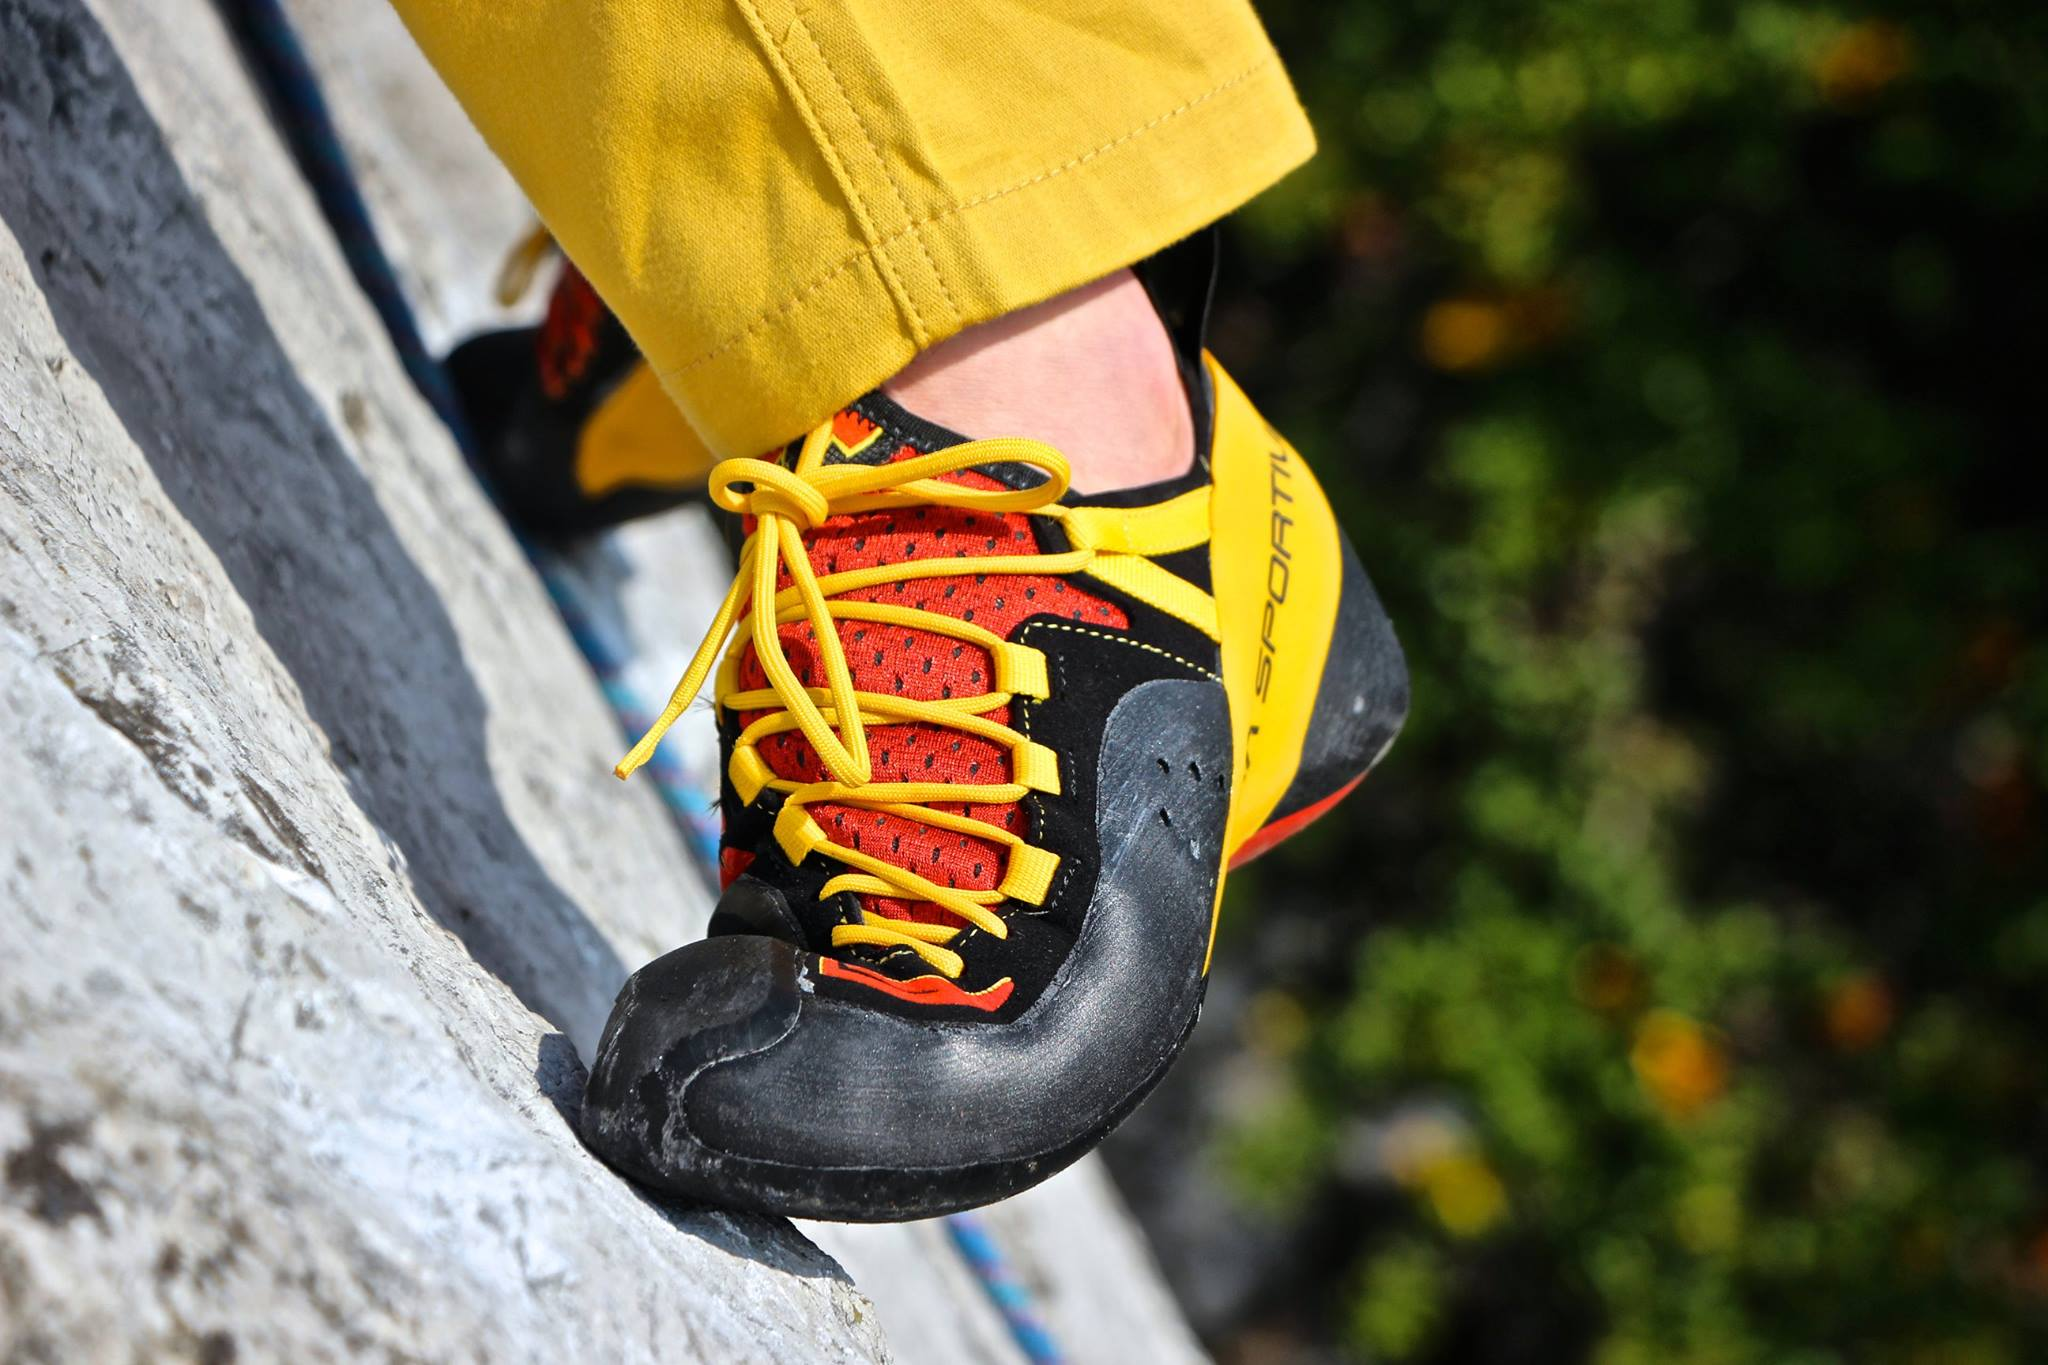 the best climbing shoes for indoor and outdoor rock